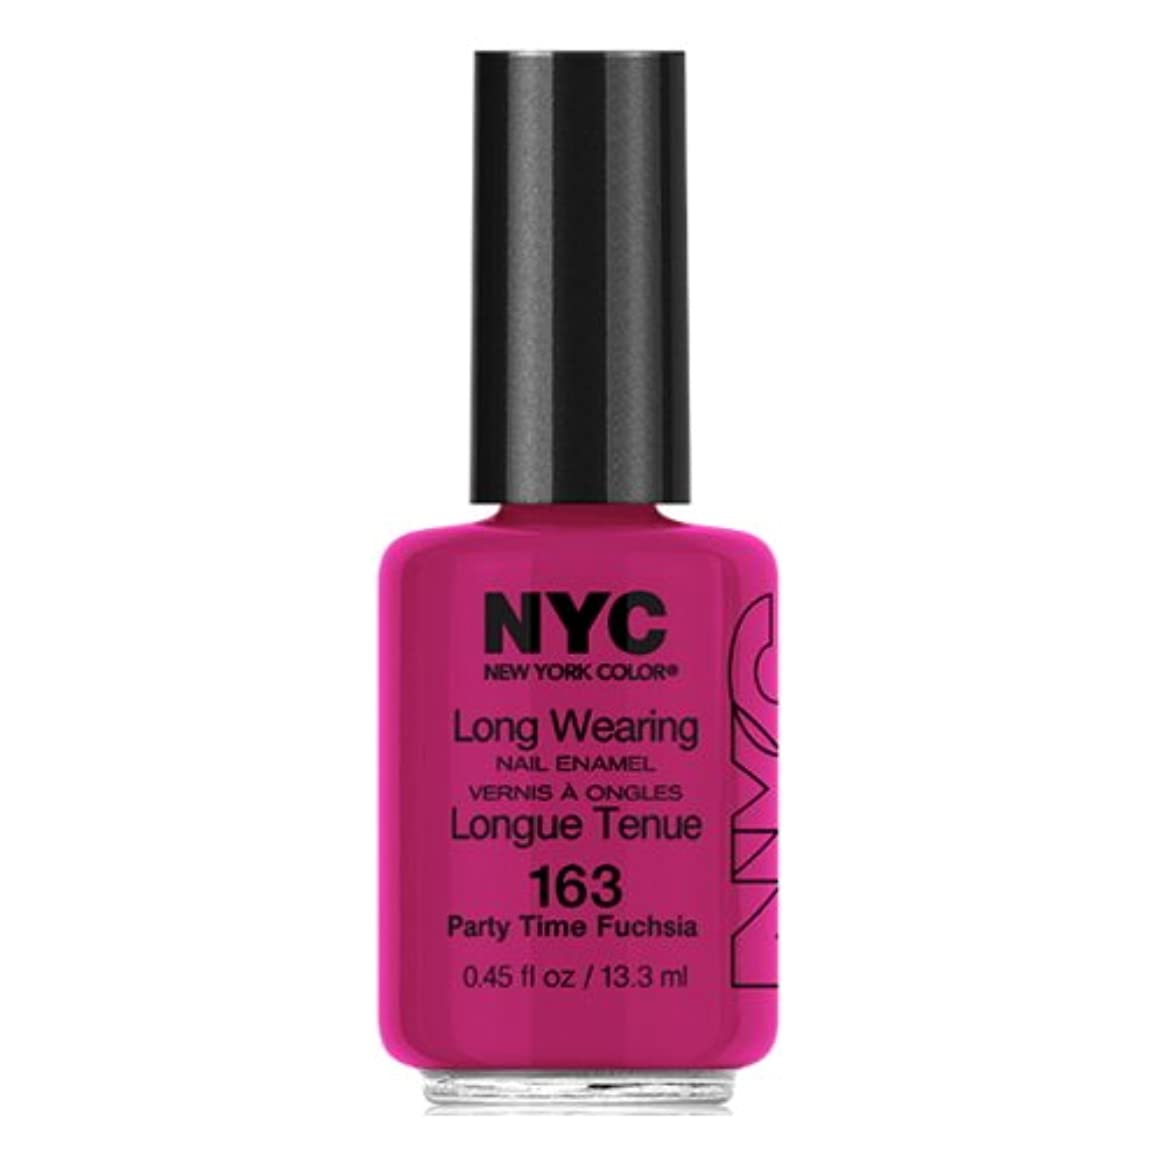 詐欺メイド証明する(6 Pack) NYC Long Wearing Nail Enamel - Party Time Fuschia (並行輸入品)